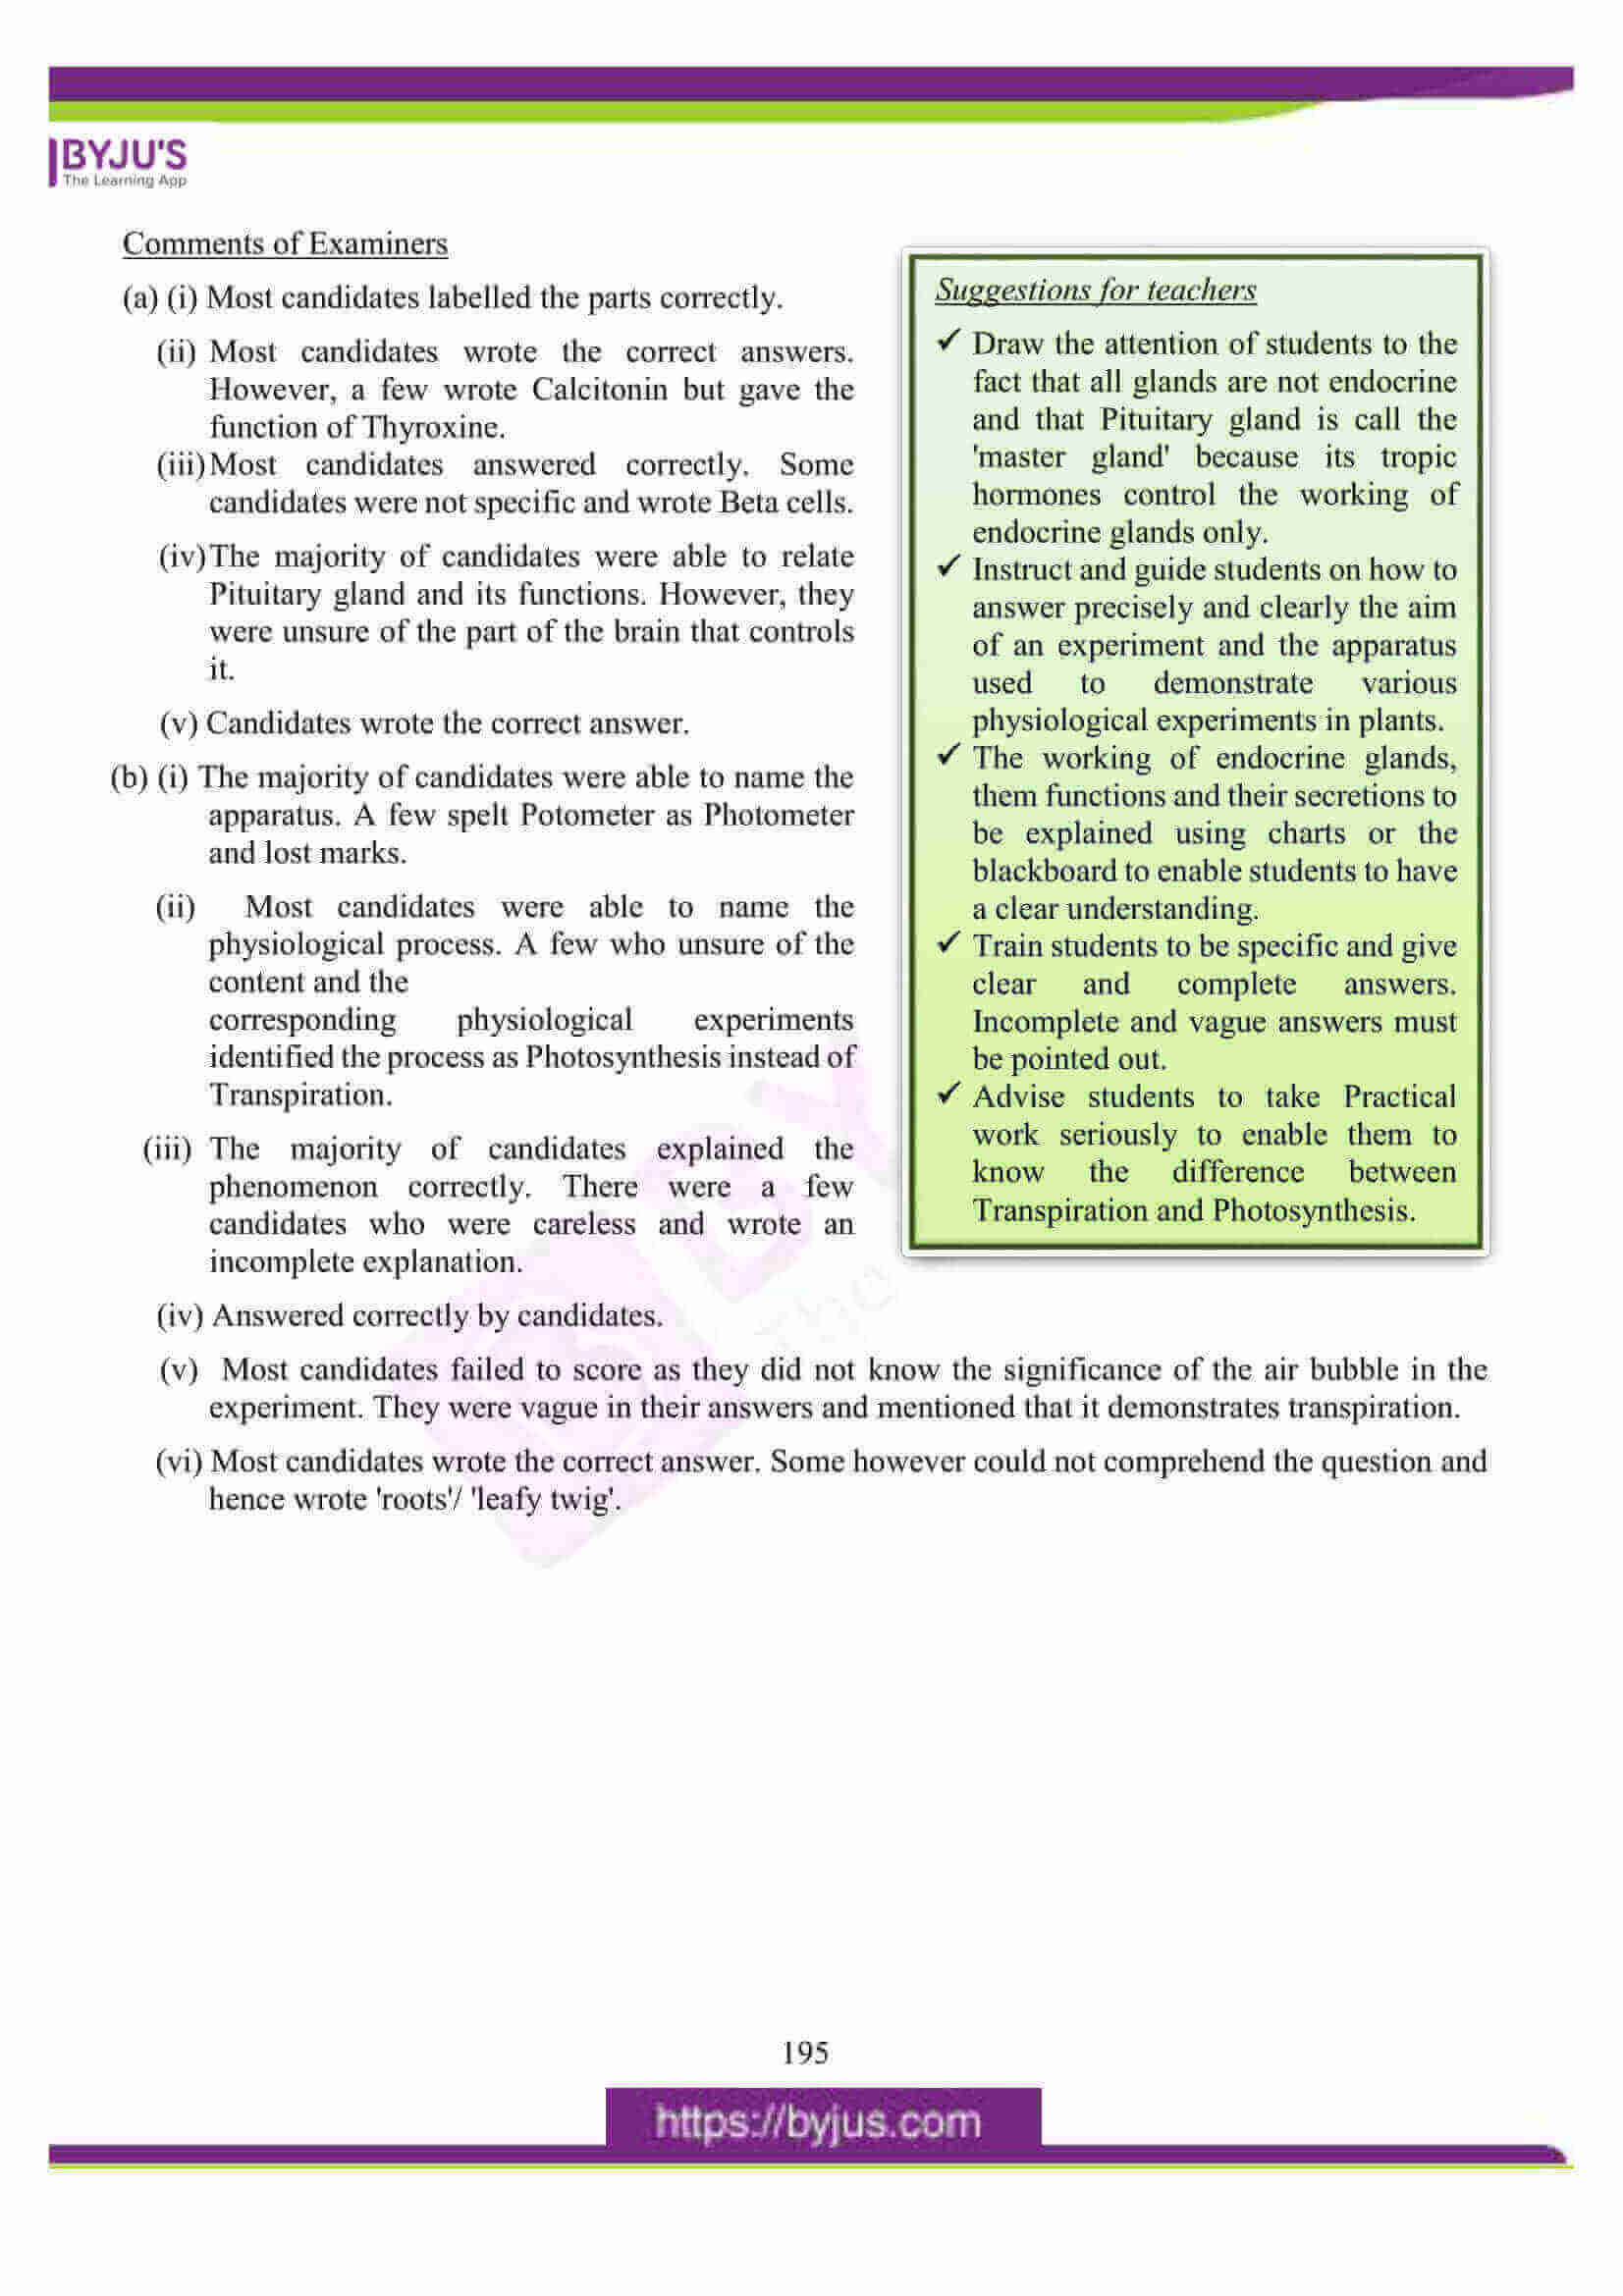 icse class 10 biology question paper solution 2016 13